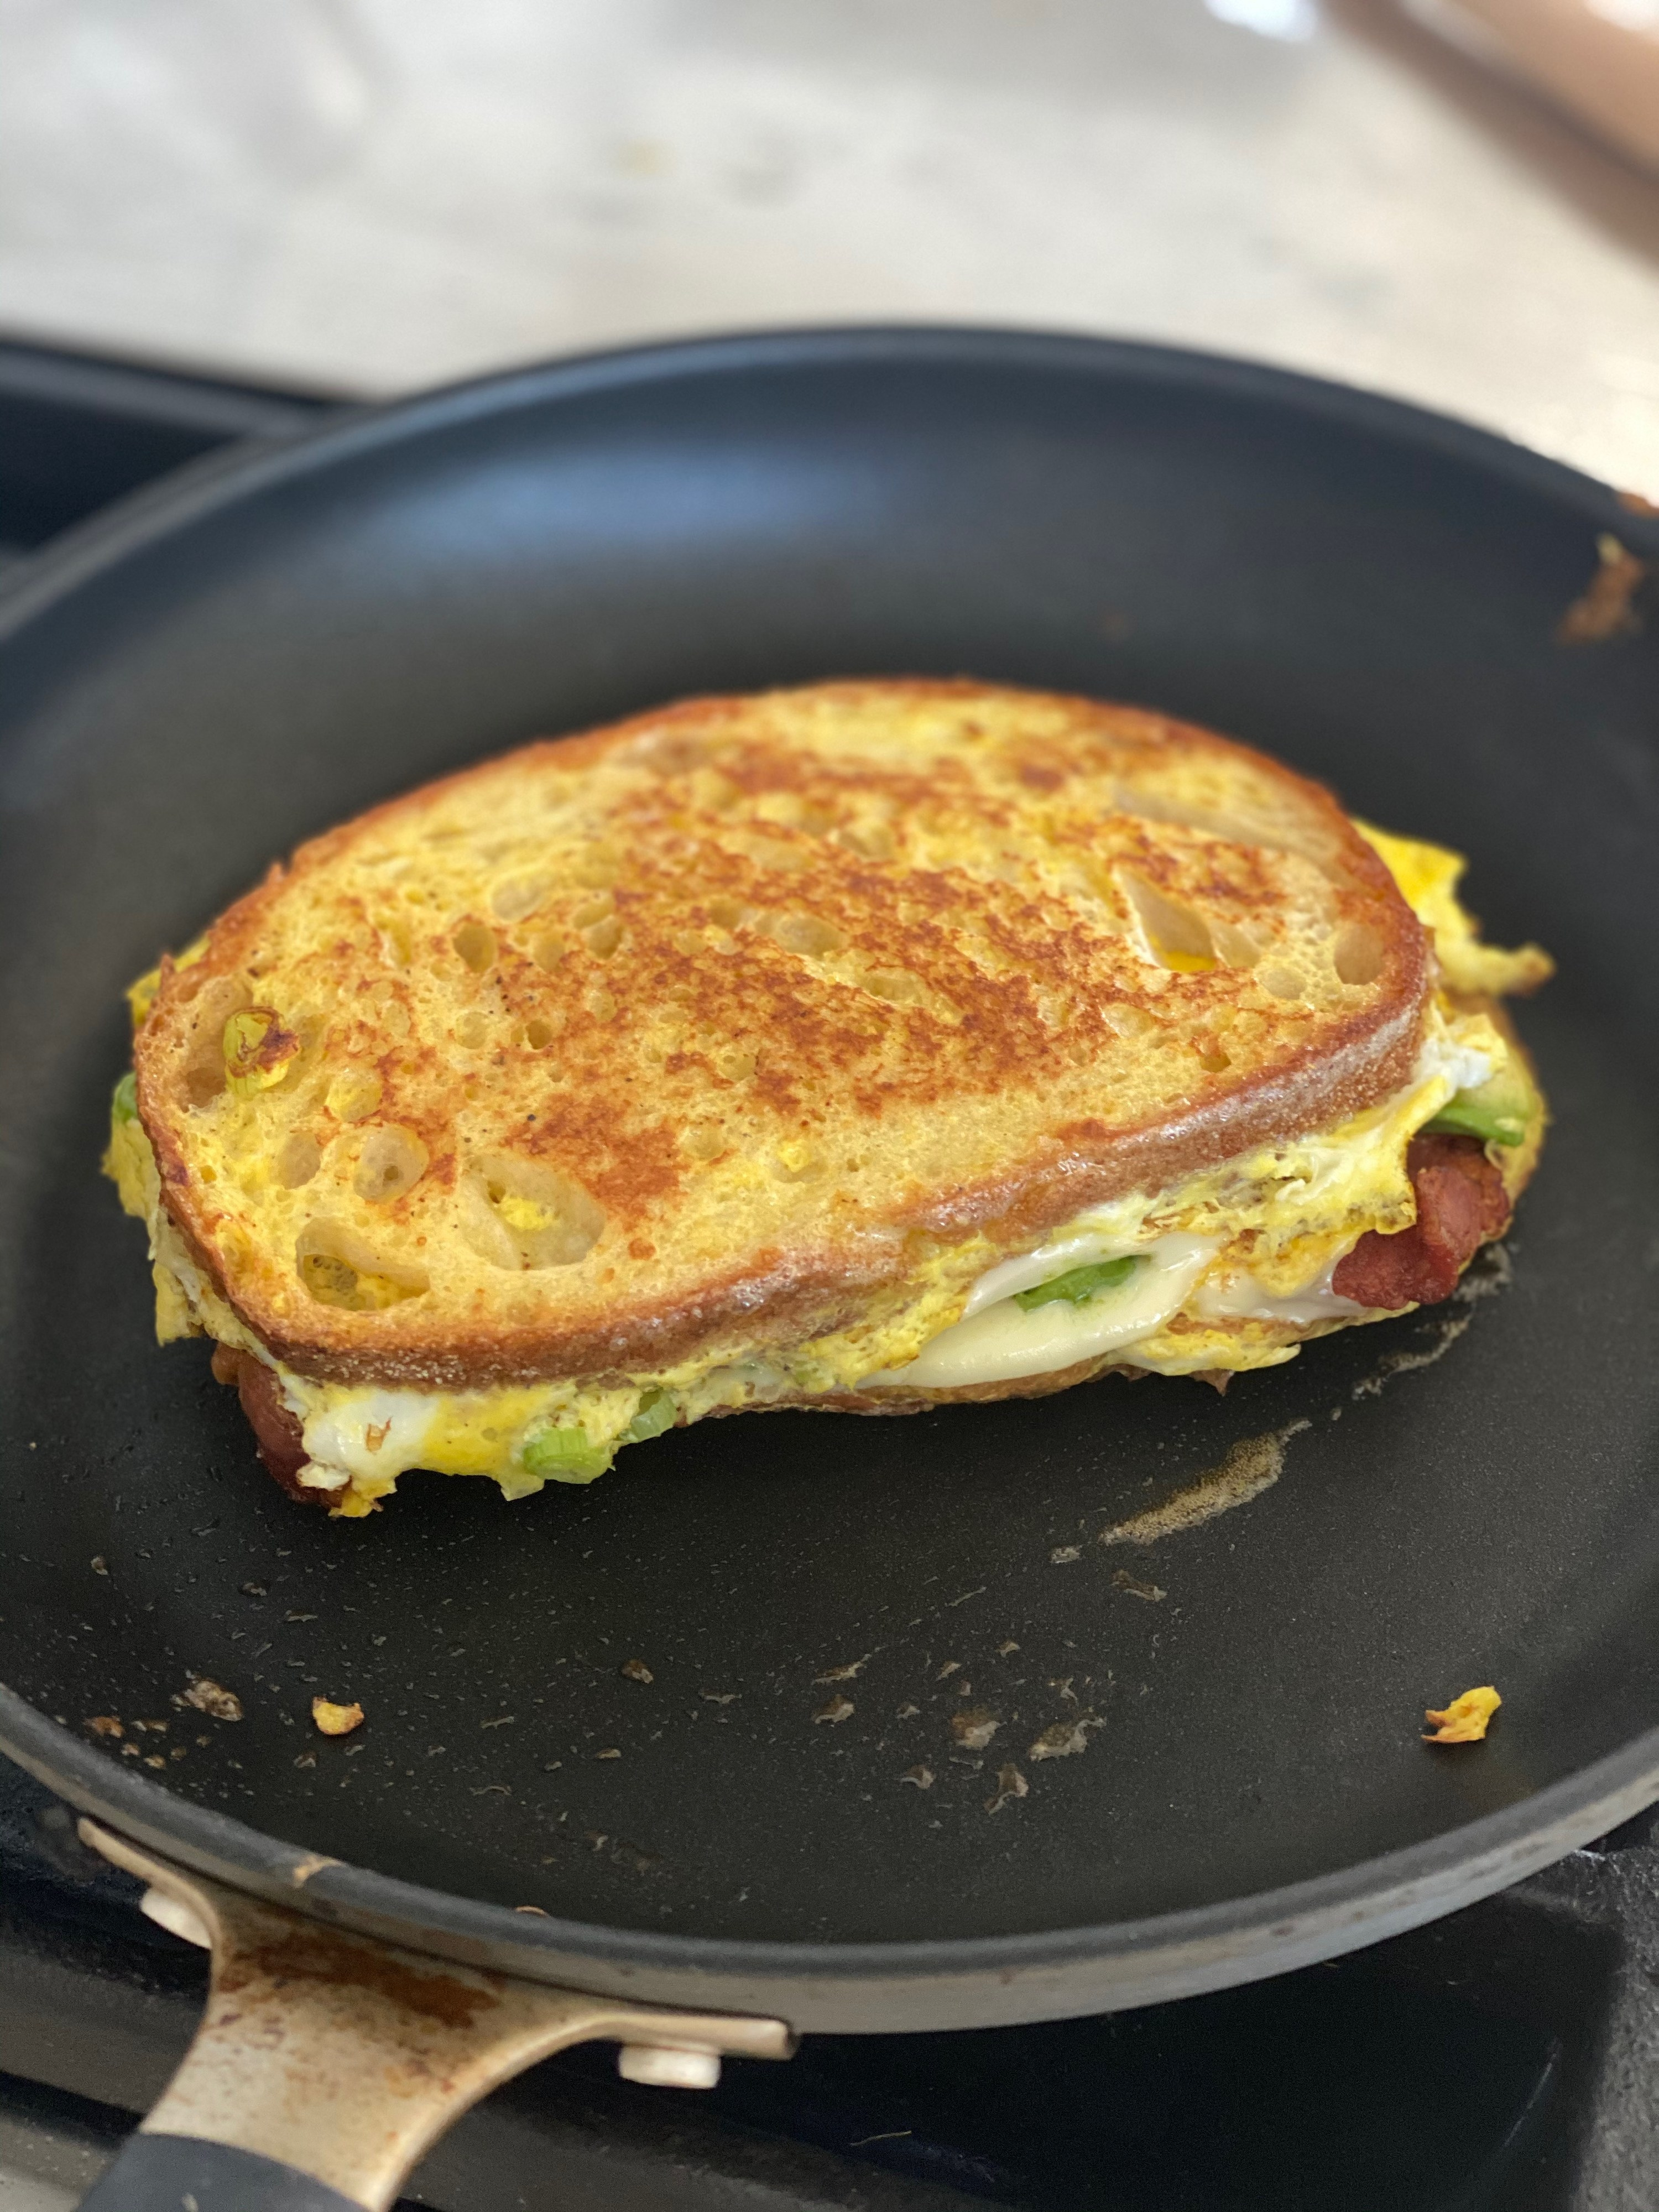 The sandwich, crisped up in the pan